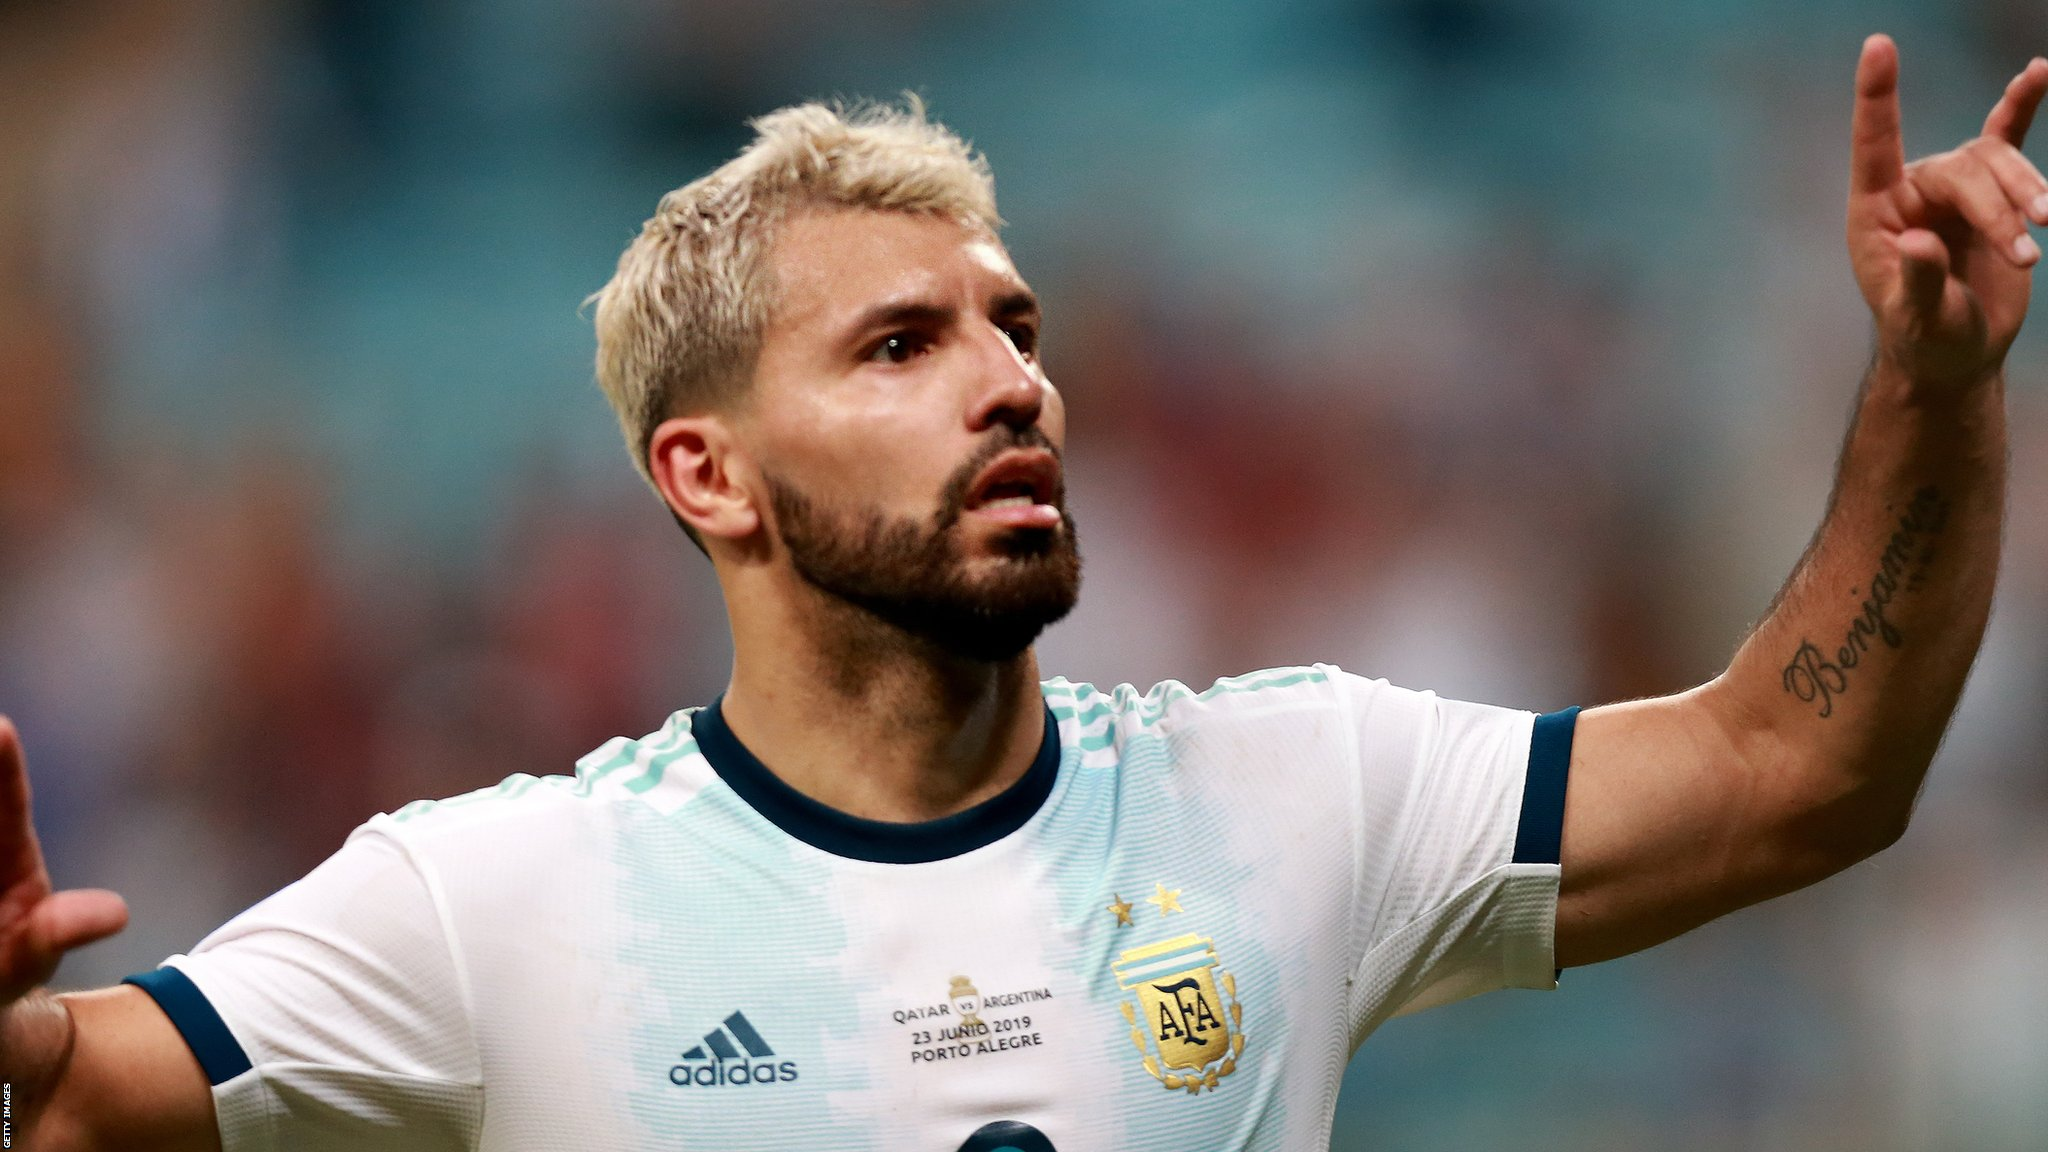 Copa America: Sergio Aguero helps Argentina beat Qatar 2-0 to reach quarter-finals